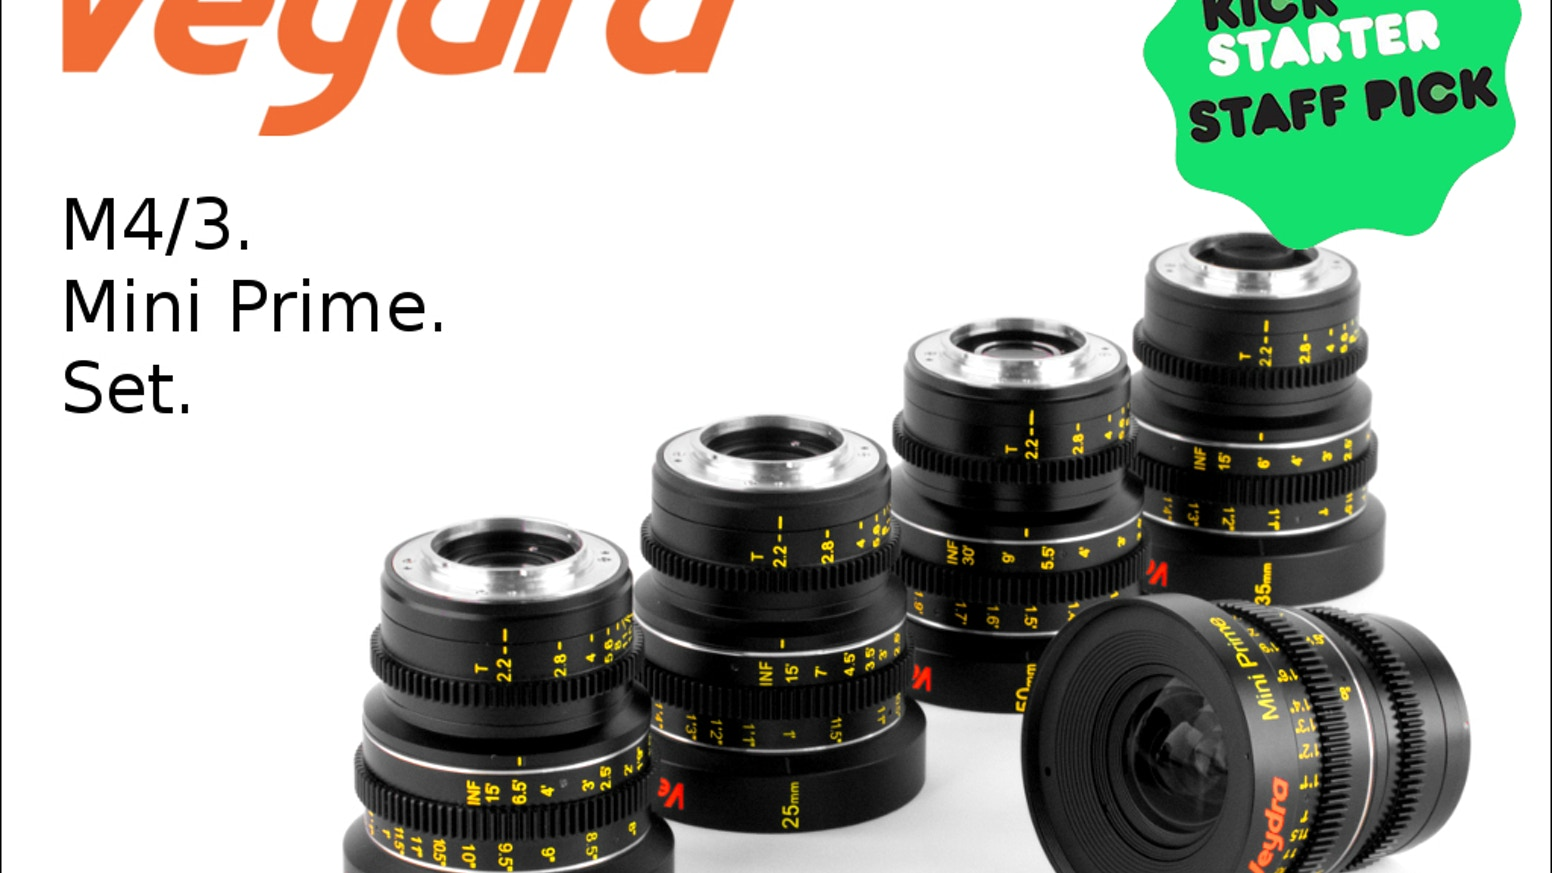 Veydra - M4/3 Cinema Lenses for GH4 and BMPCC by Ryan Avery ...